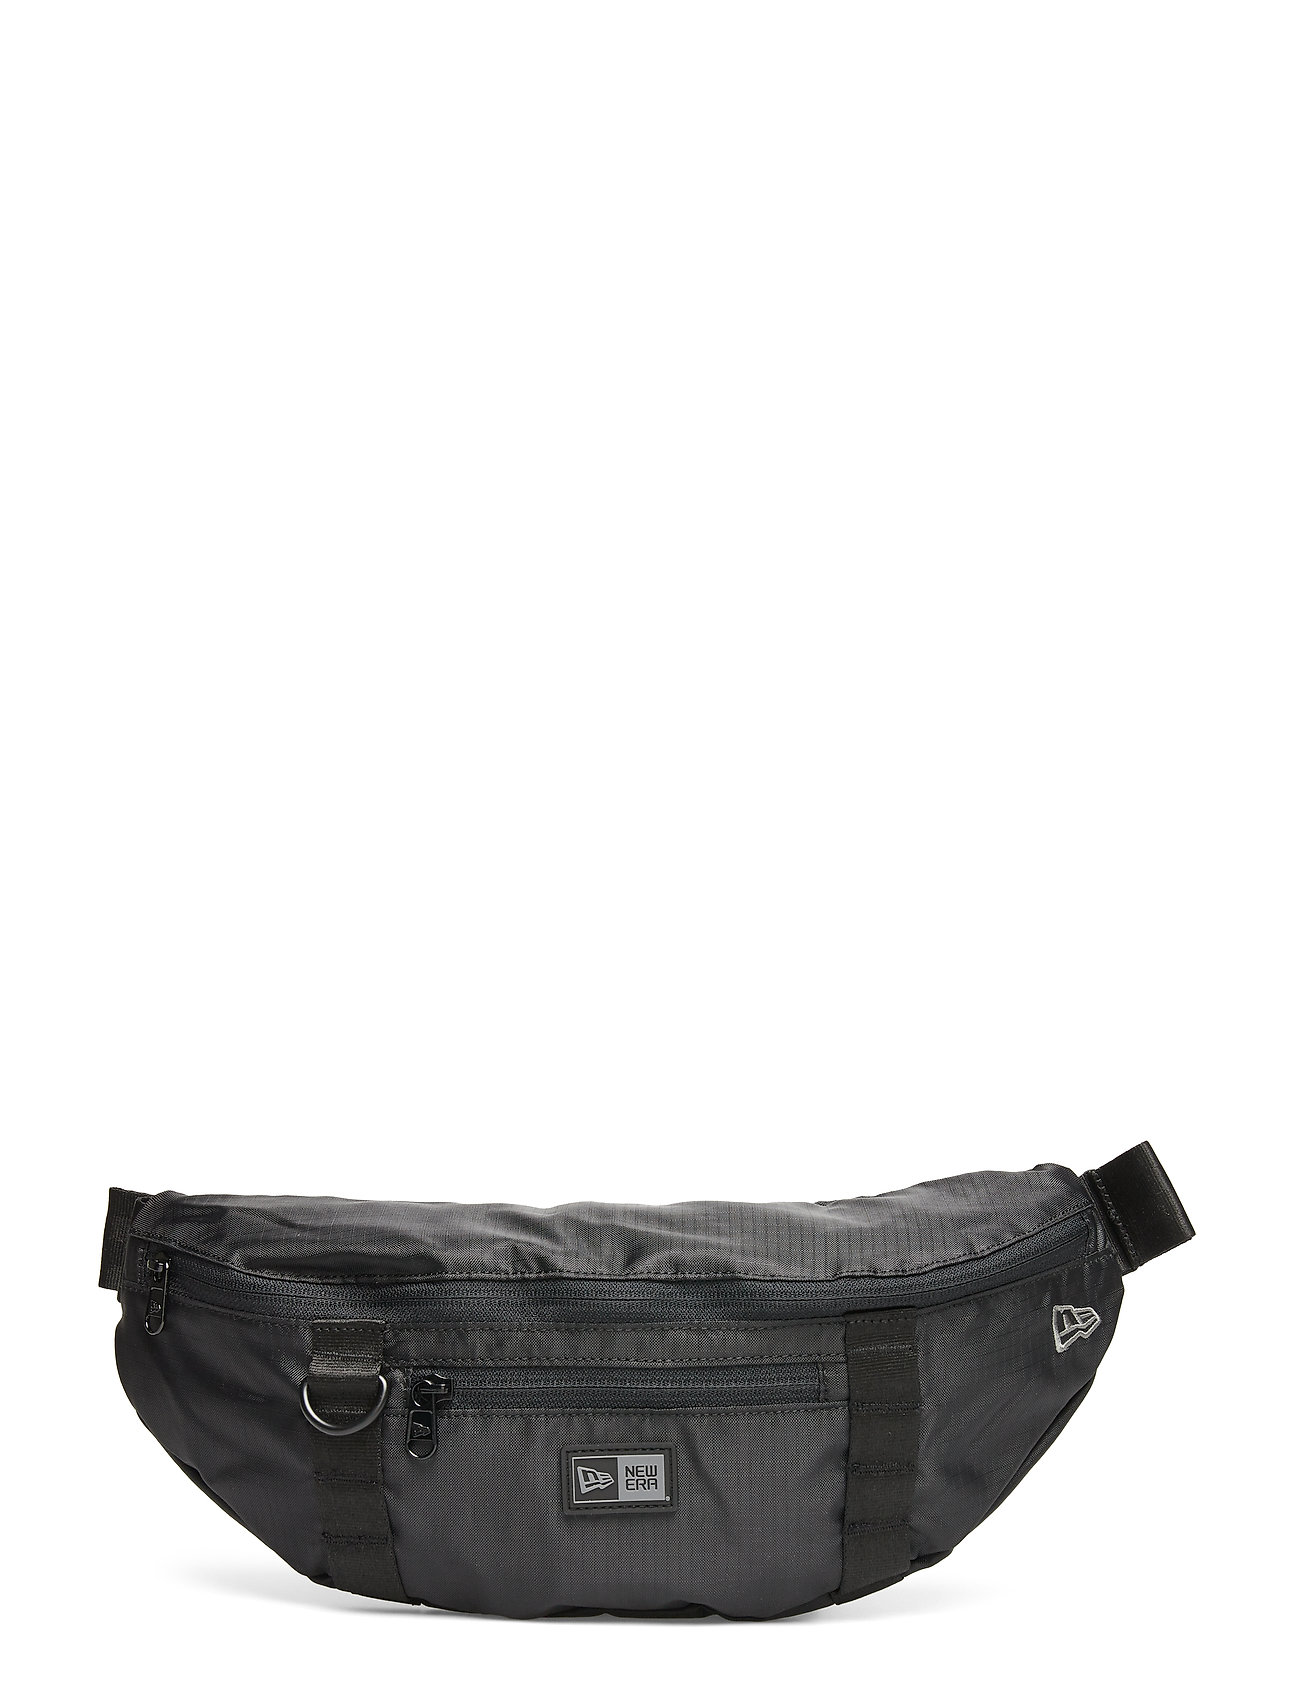 New Era NE WAIST BAG LIGHT NE - BLK